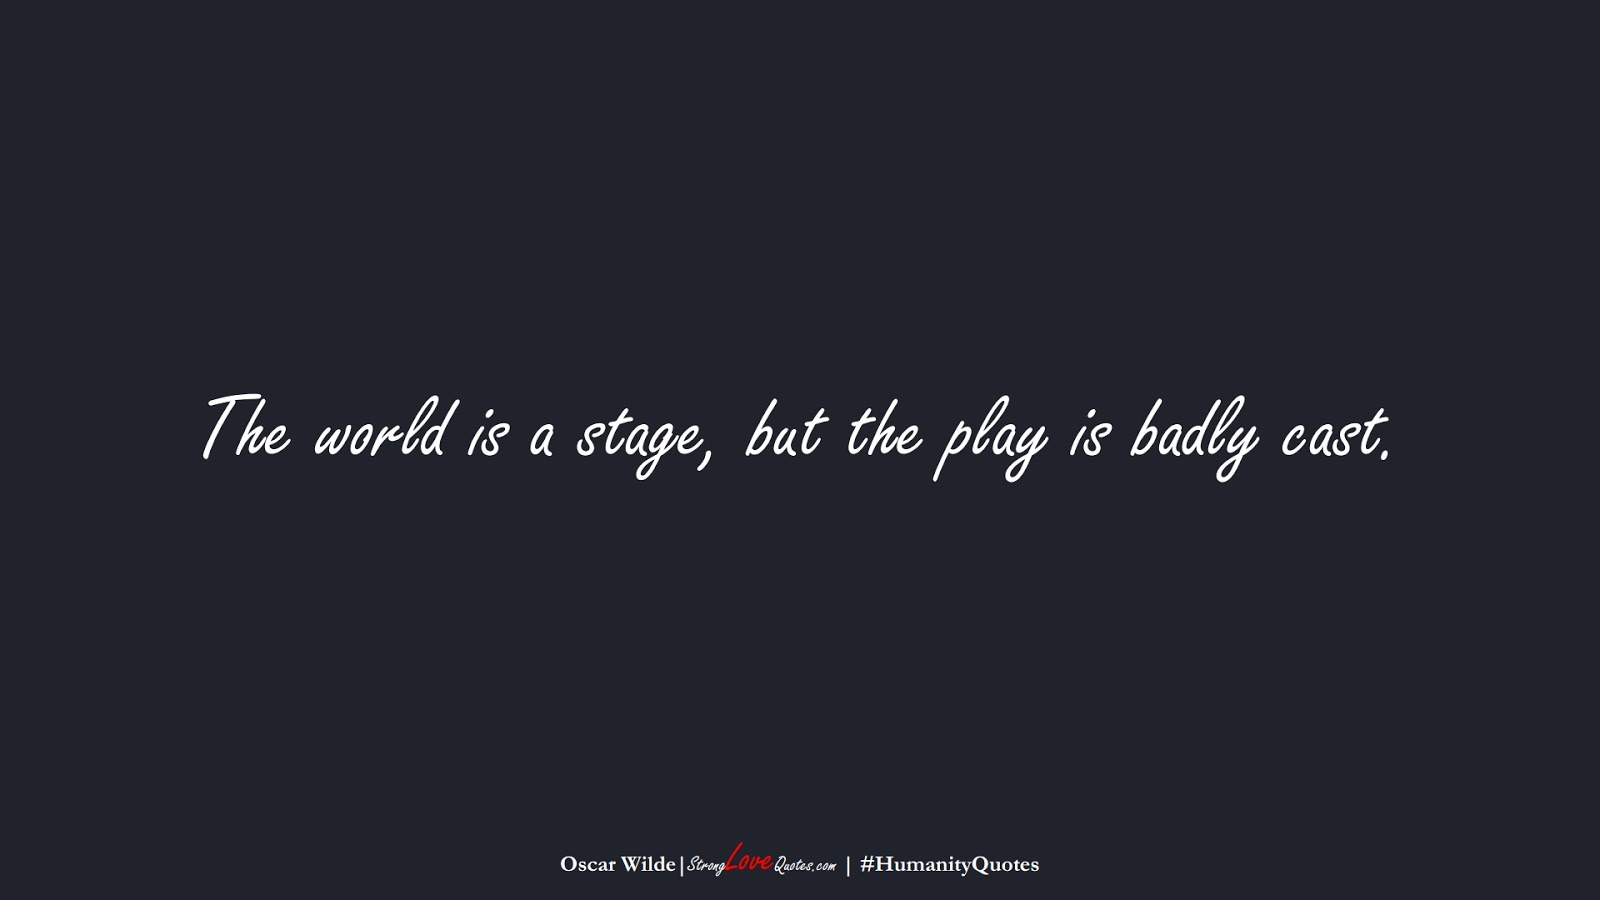 The world is a stage, but the play is badly cast. (Oscar Wilde);  #HumanityQuotes